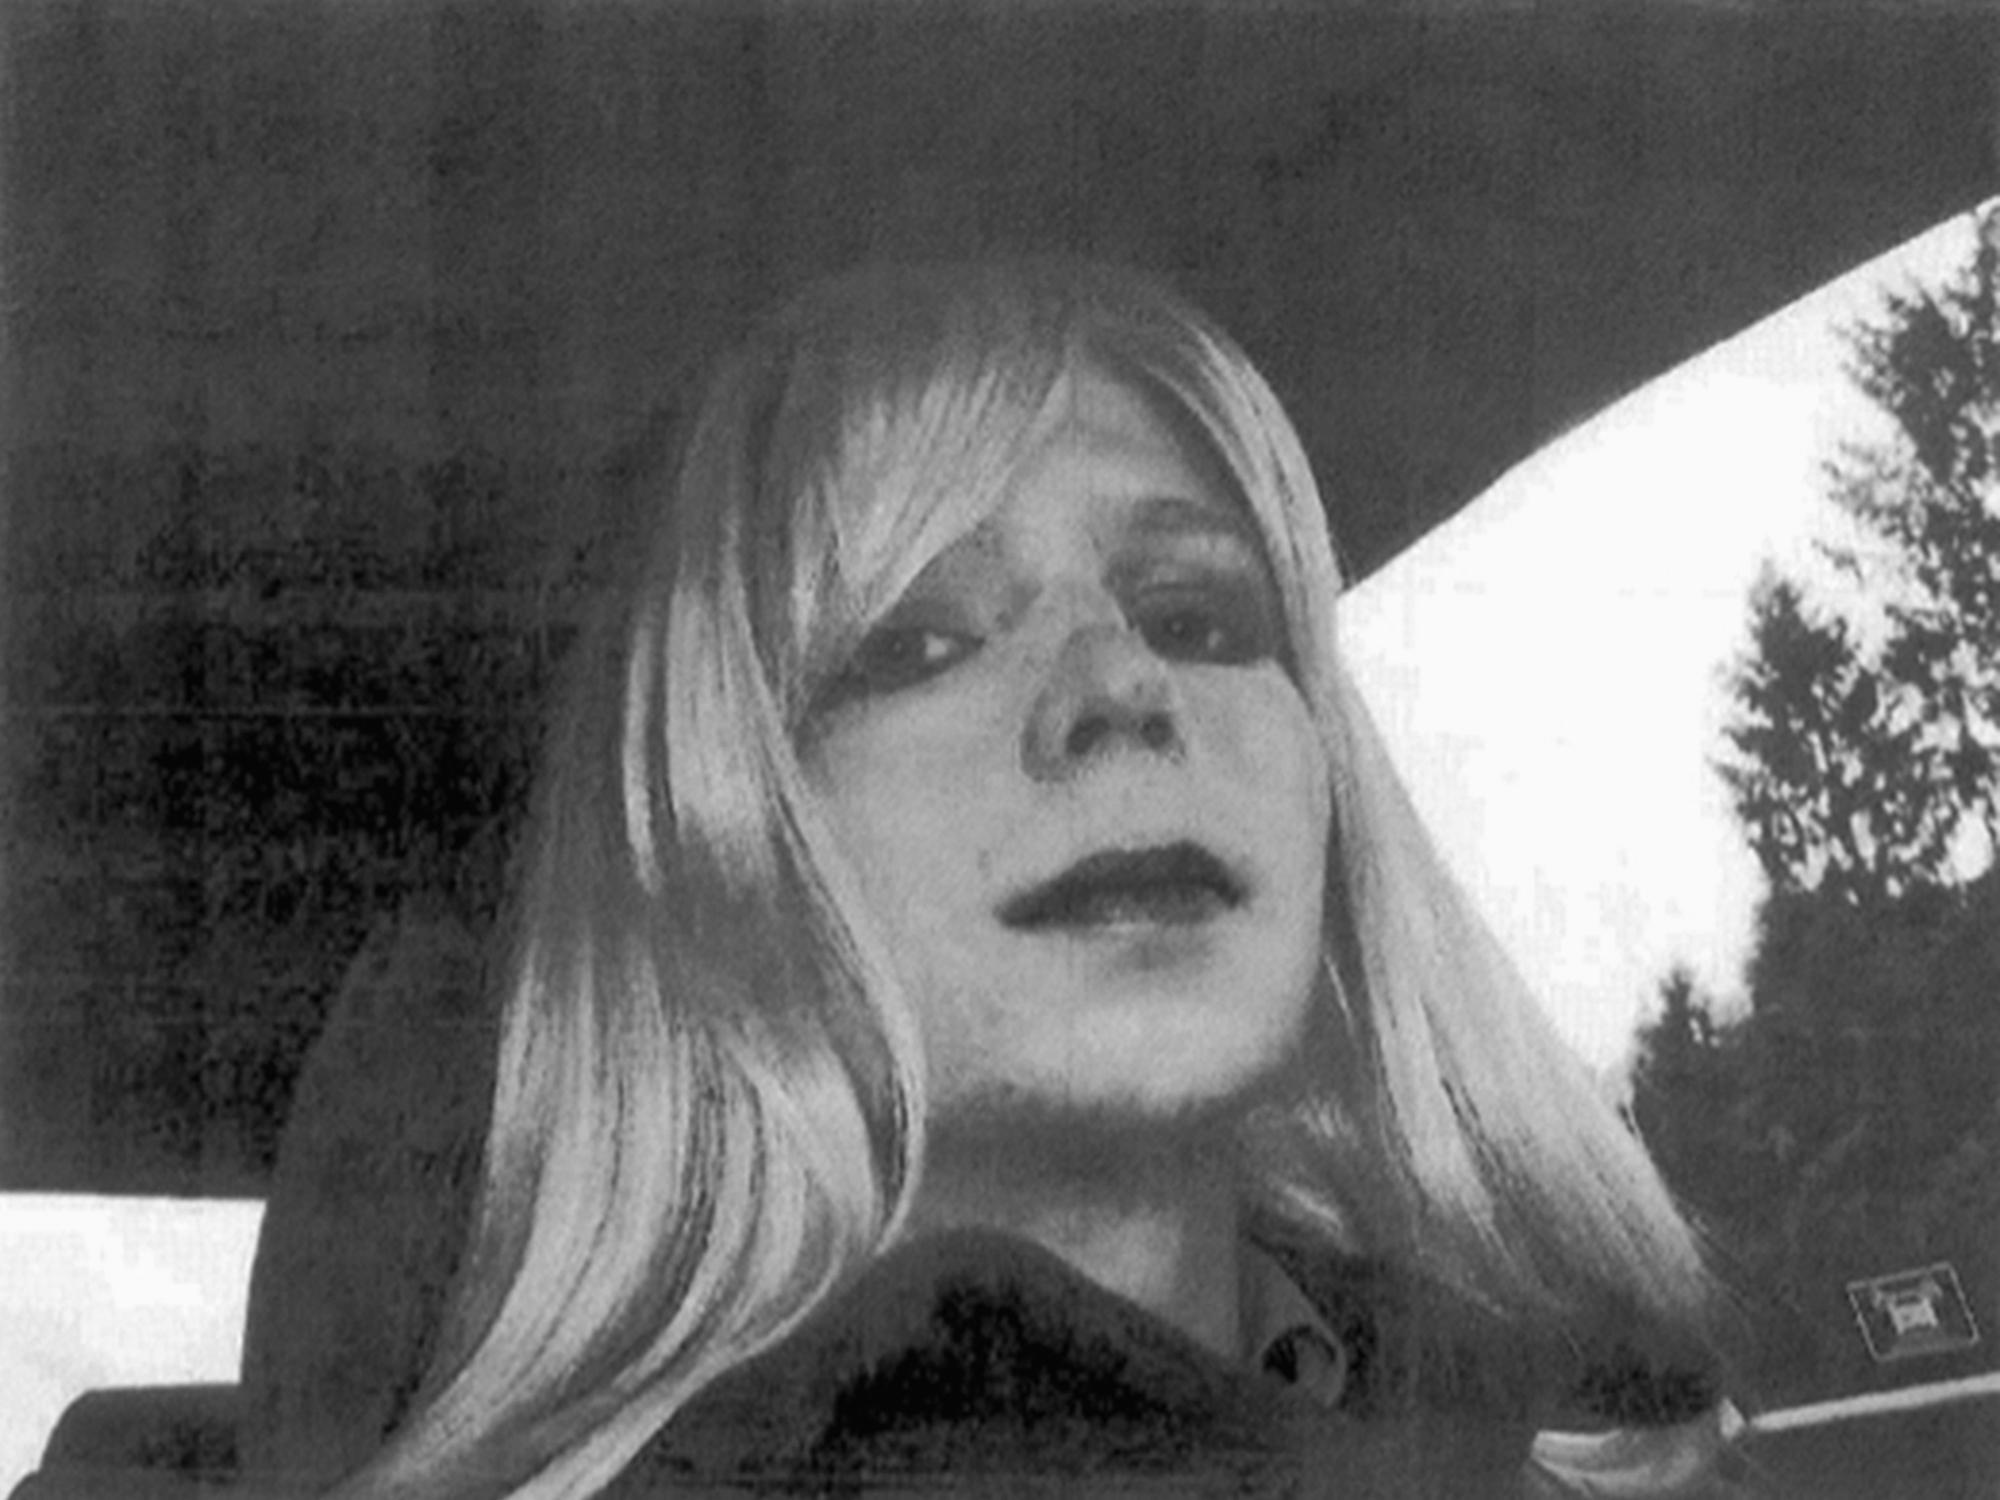 Pvt. Chelsea Manning released today after 7 years in prison, reports say